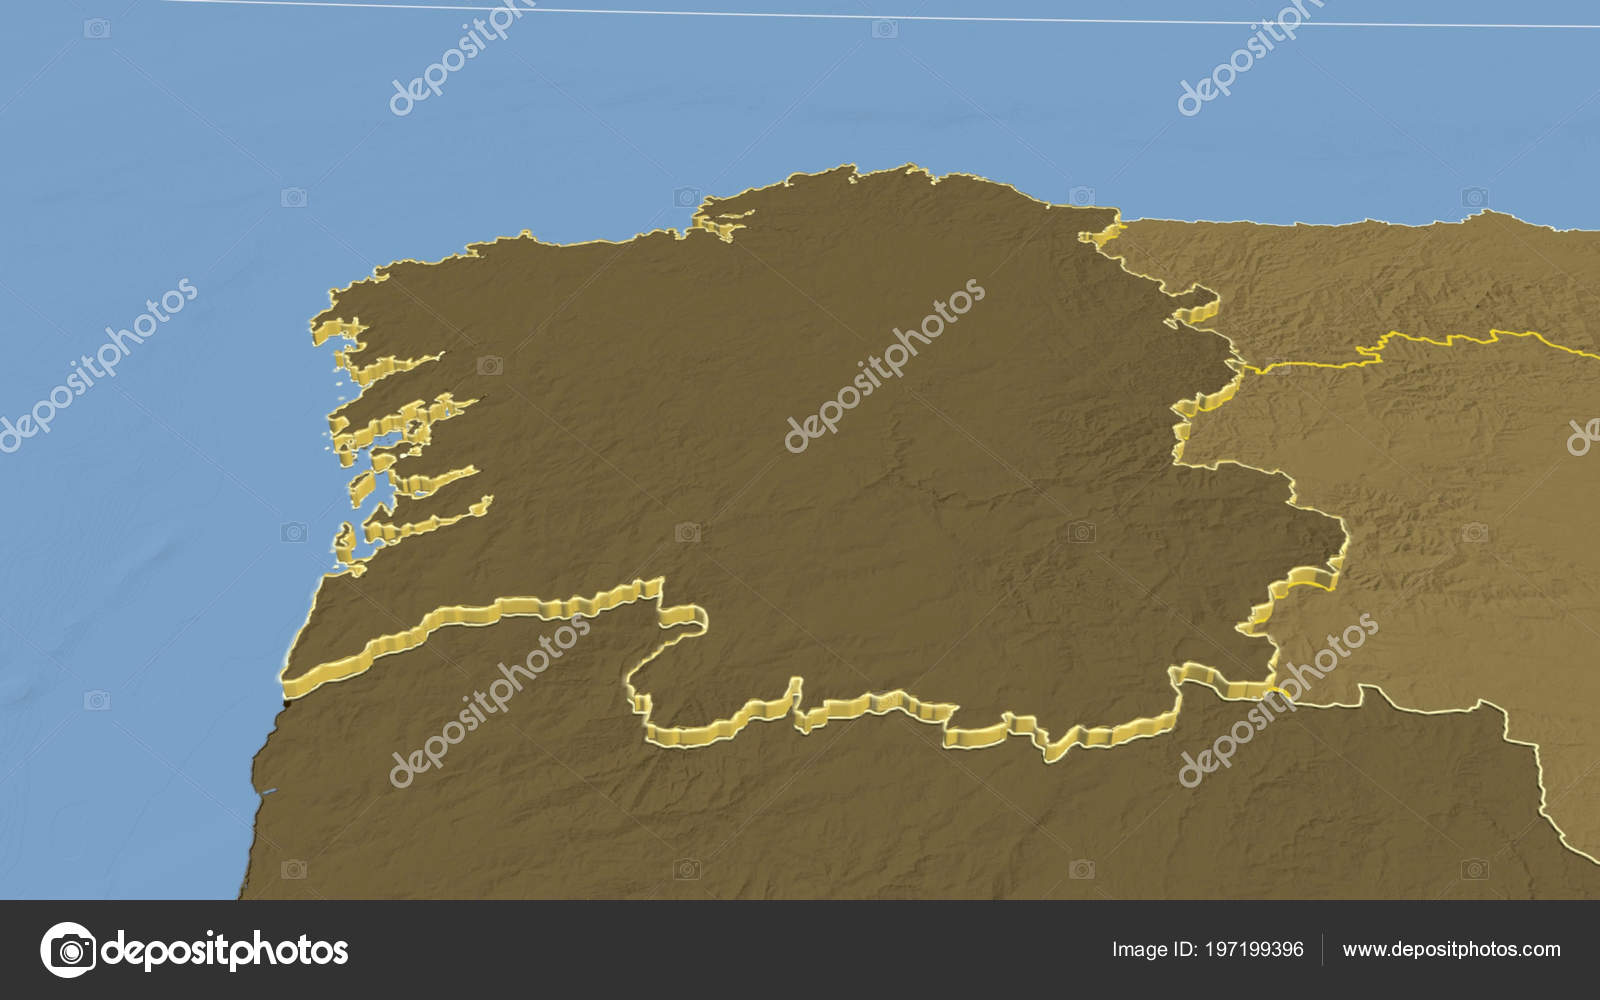 Elevation Map Of Spain.Galicia Region Spain Extruded Bilevel Elevation Map Stock Photo